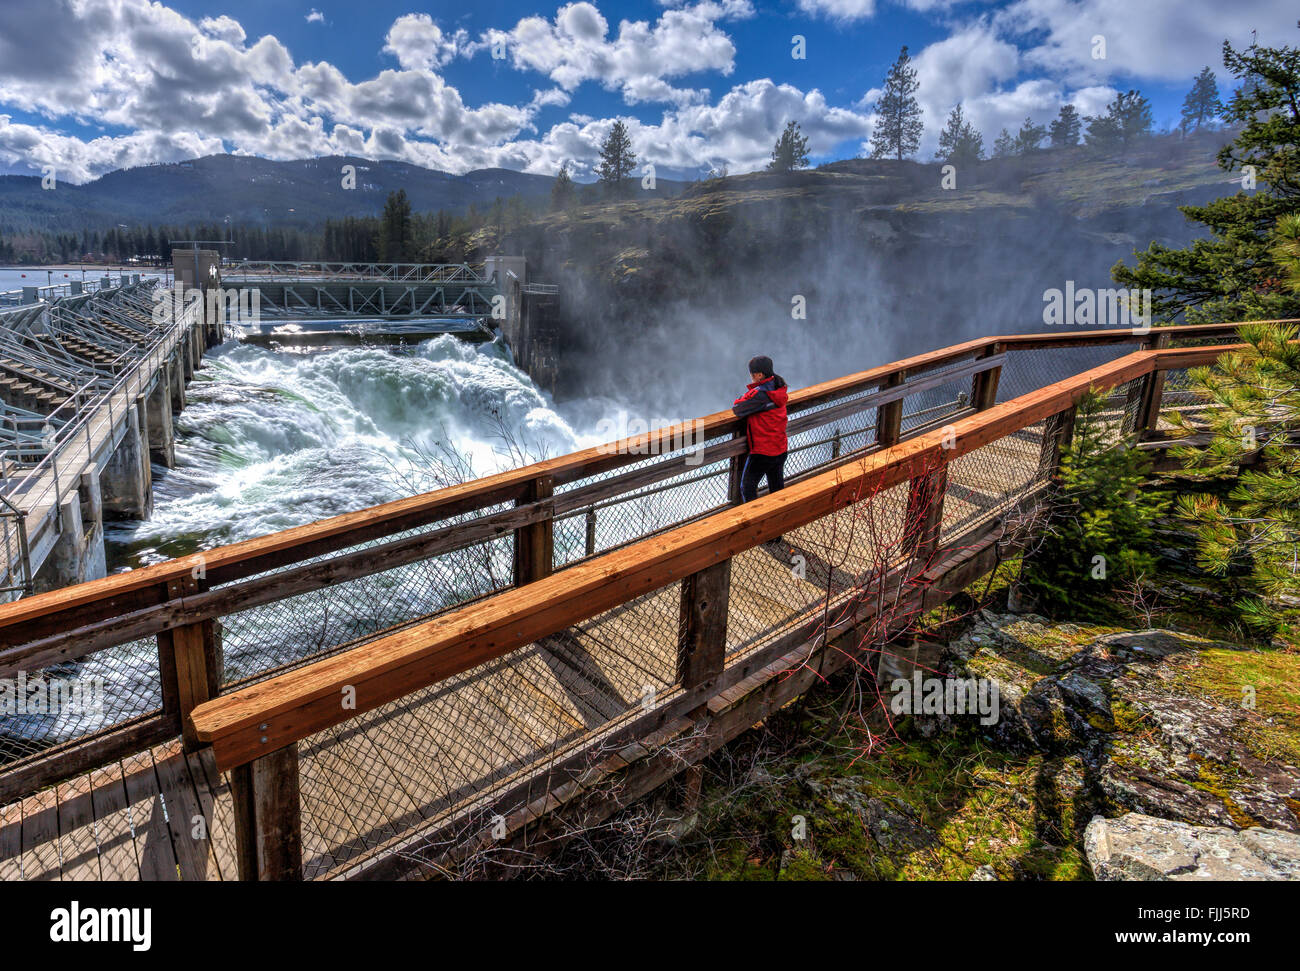 A woman looks out at the rushing water at the Post Falls Dam in Idaho. - Stock Image